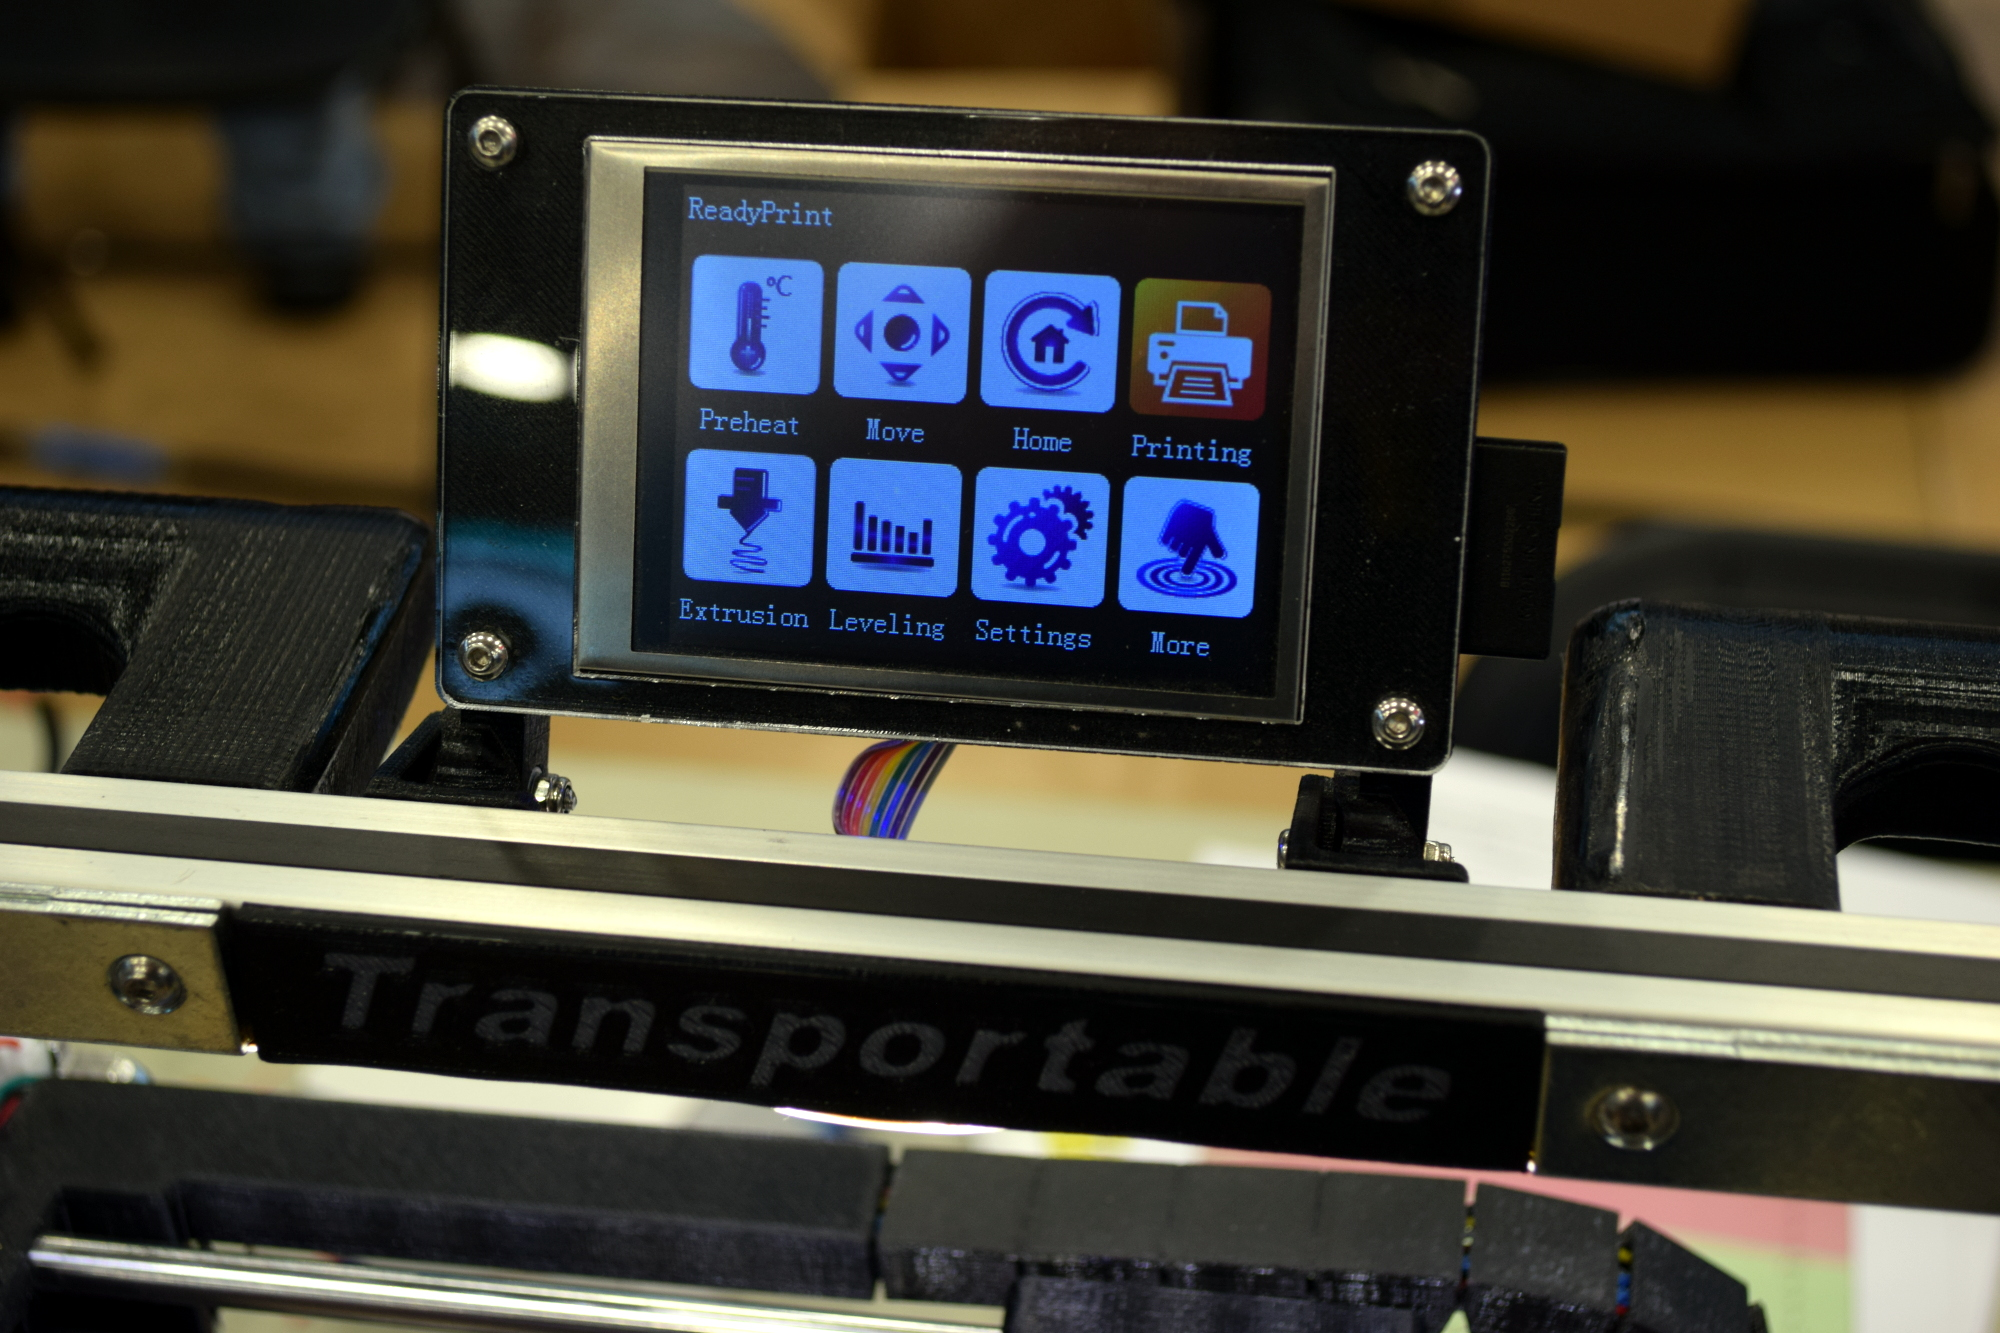 Open Source DIY Printers Are Alive And Well: What We Saw At ERRF 18